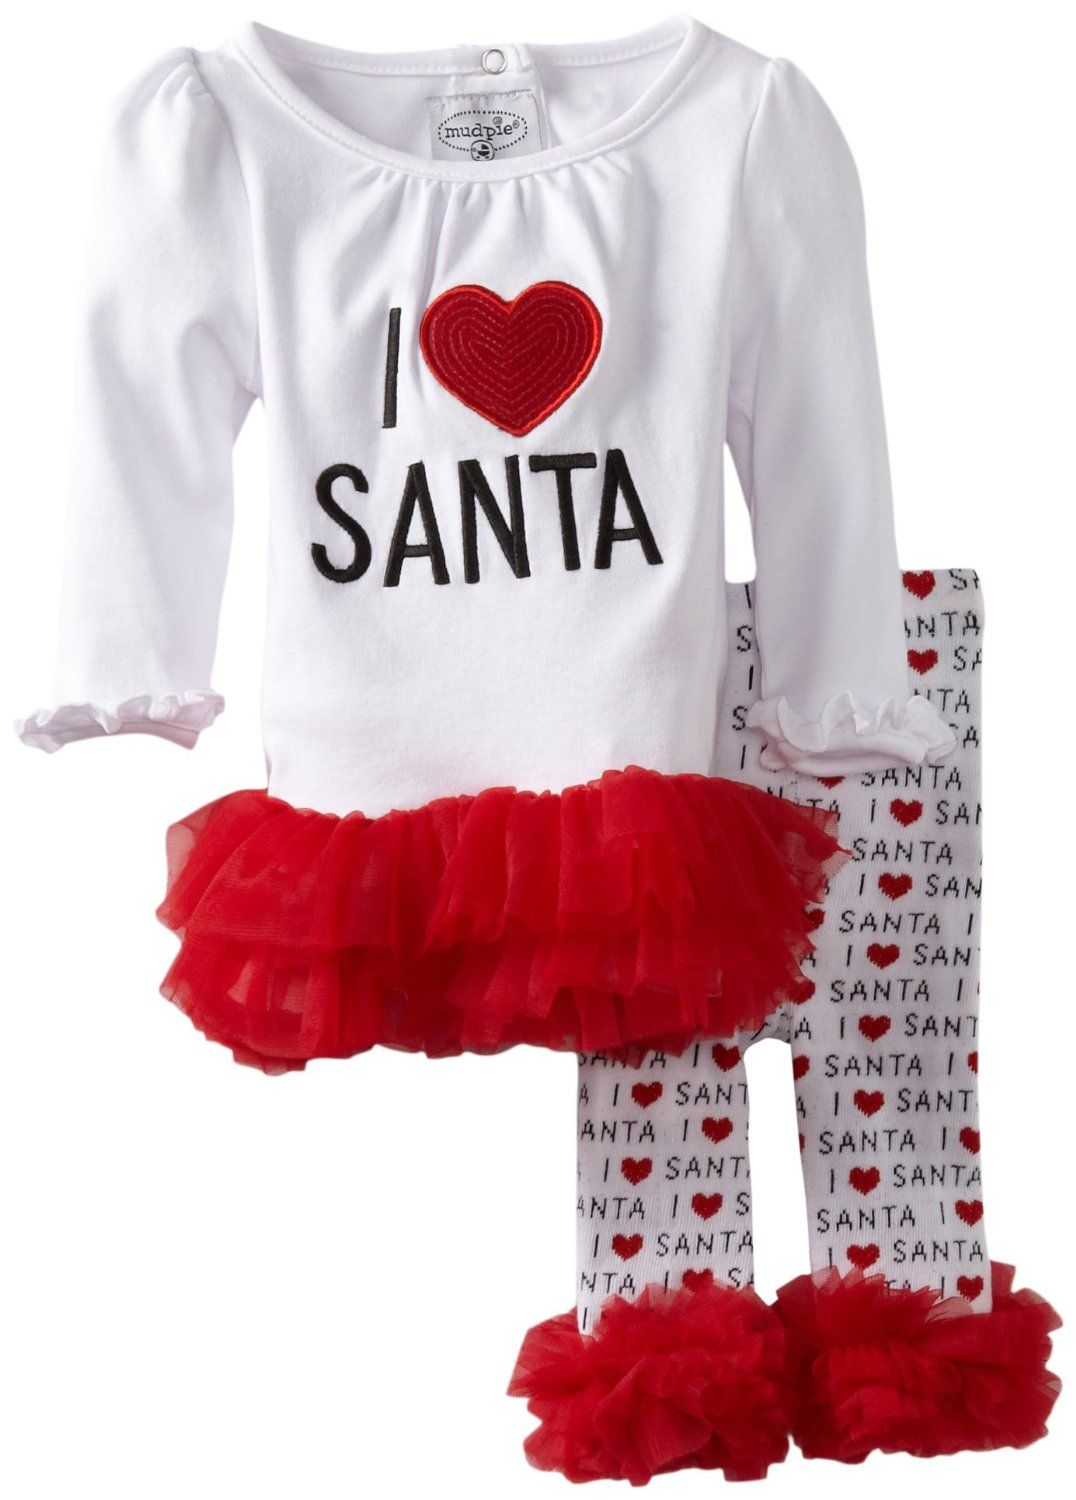 Baby Christmas Outfits | Classy Baby Gear | Babies this, babies that ...